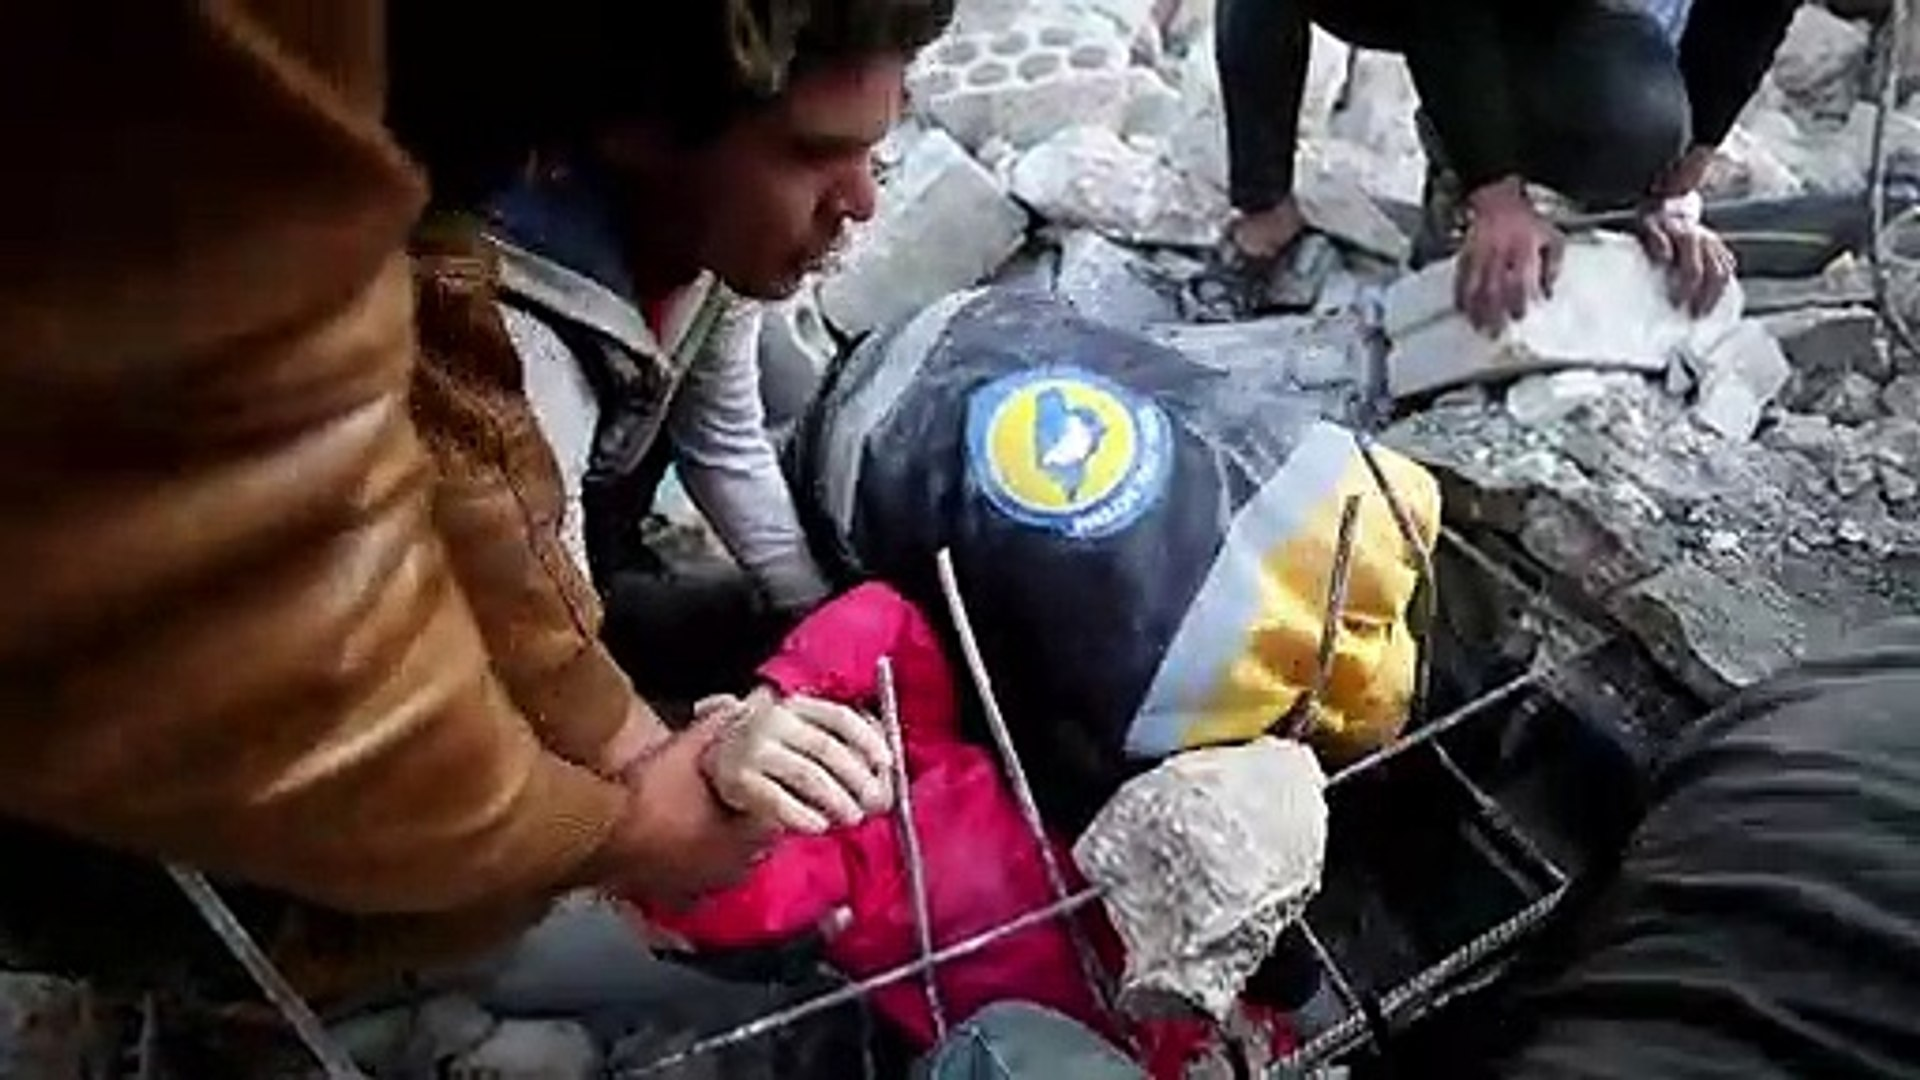 White Helmets pull little girl from air strike rubble in Syria